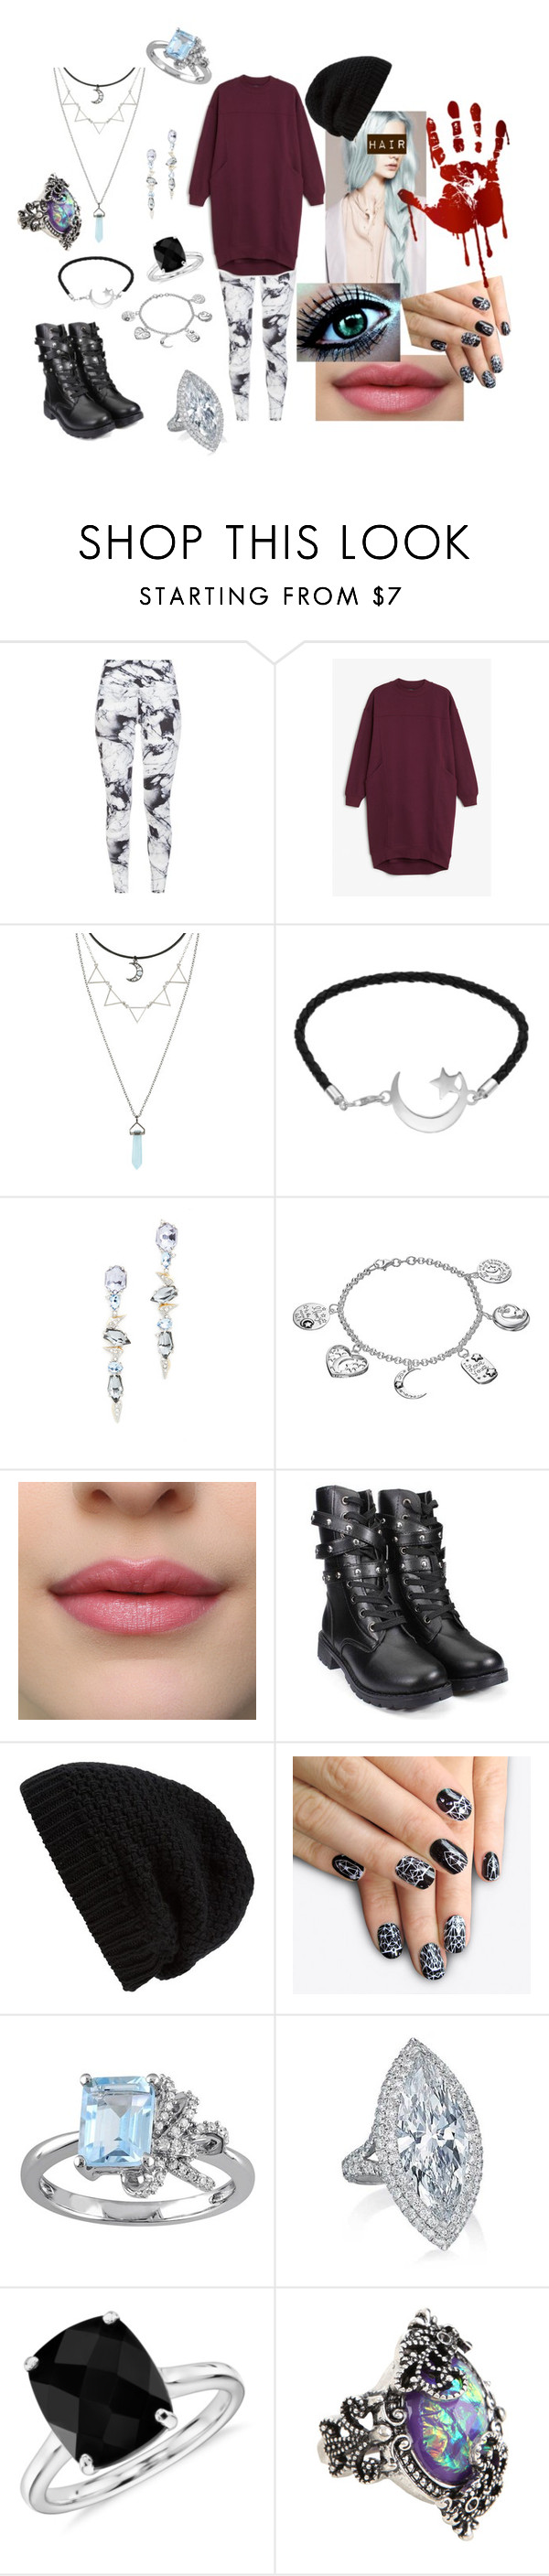 """""""Untitled #16"""" by s19970103m ❤ liked on Polyvore featuring Varley, Monki, Alexis Bittar, Timeless Sterling Silver, Rick Owens, alfa.K, Laura Ashley and Blue Nile"""